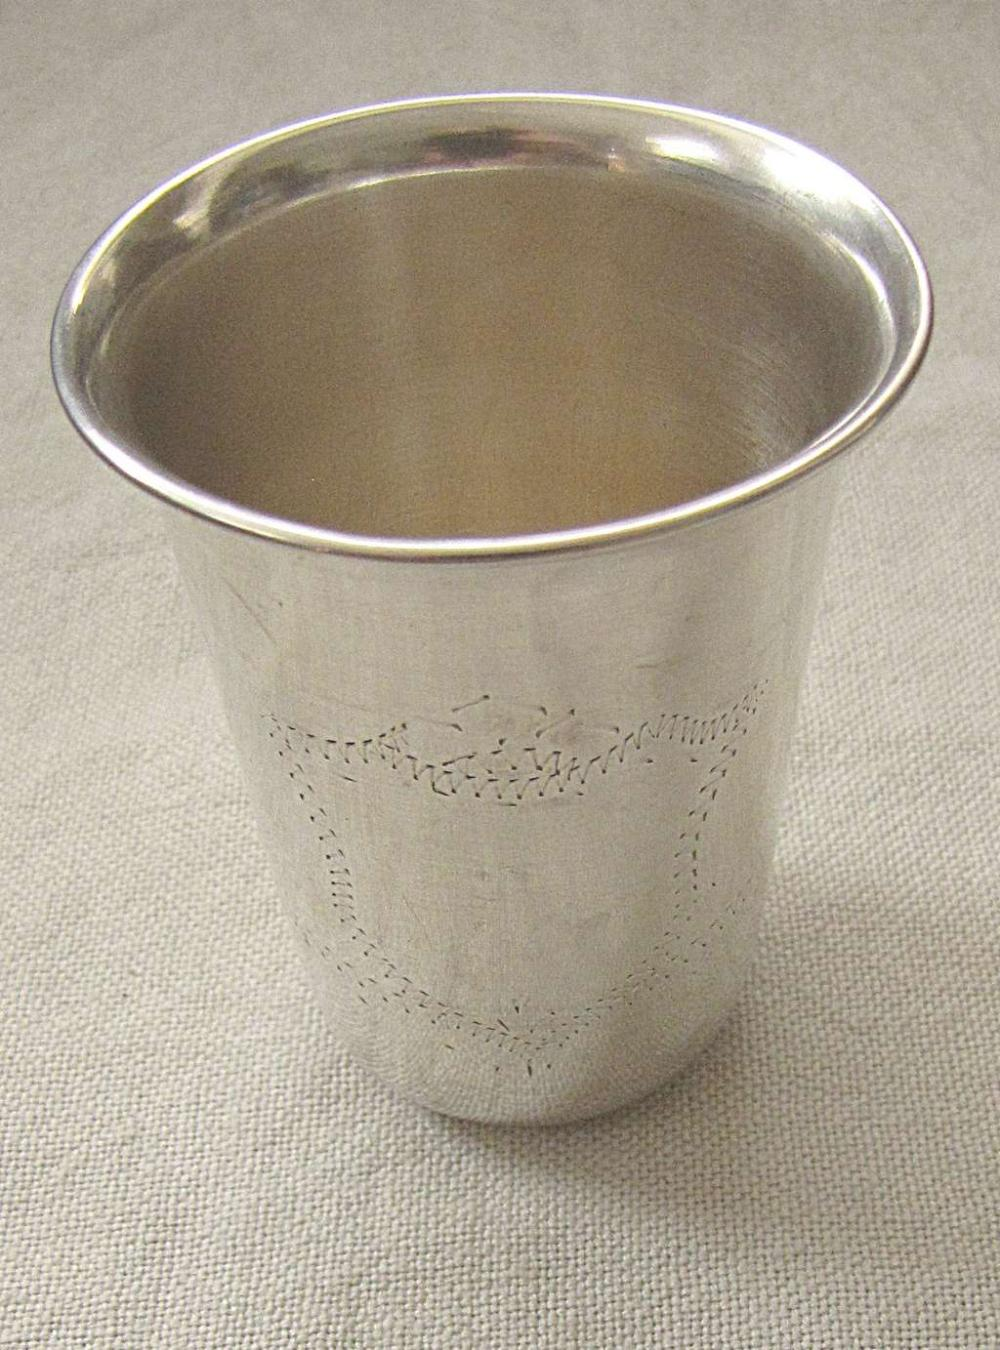 Old silver 800 kiddush cup with engraved cartouche, 42 gr., Hazorfim, Israel, 1950s